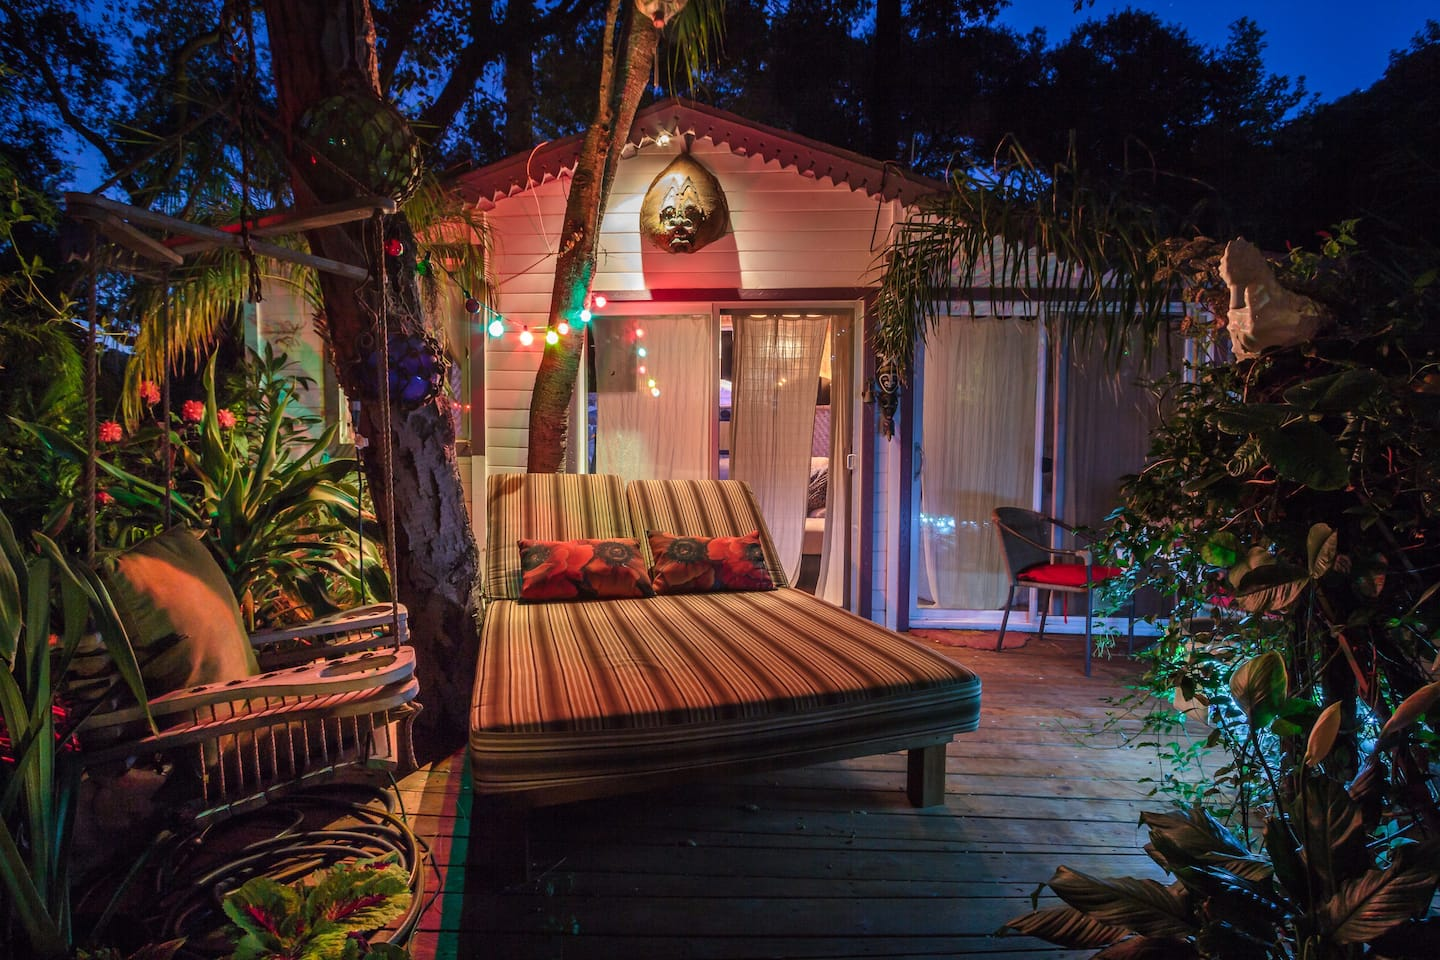 Pirates of the Caribbean Getaway - Airbnb in Los Angeles